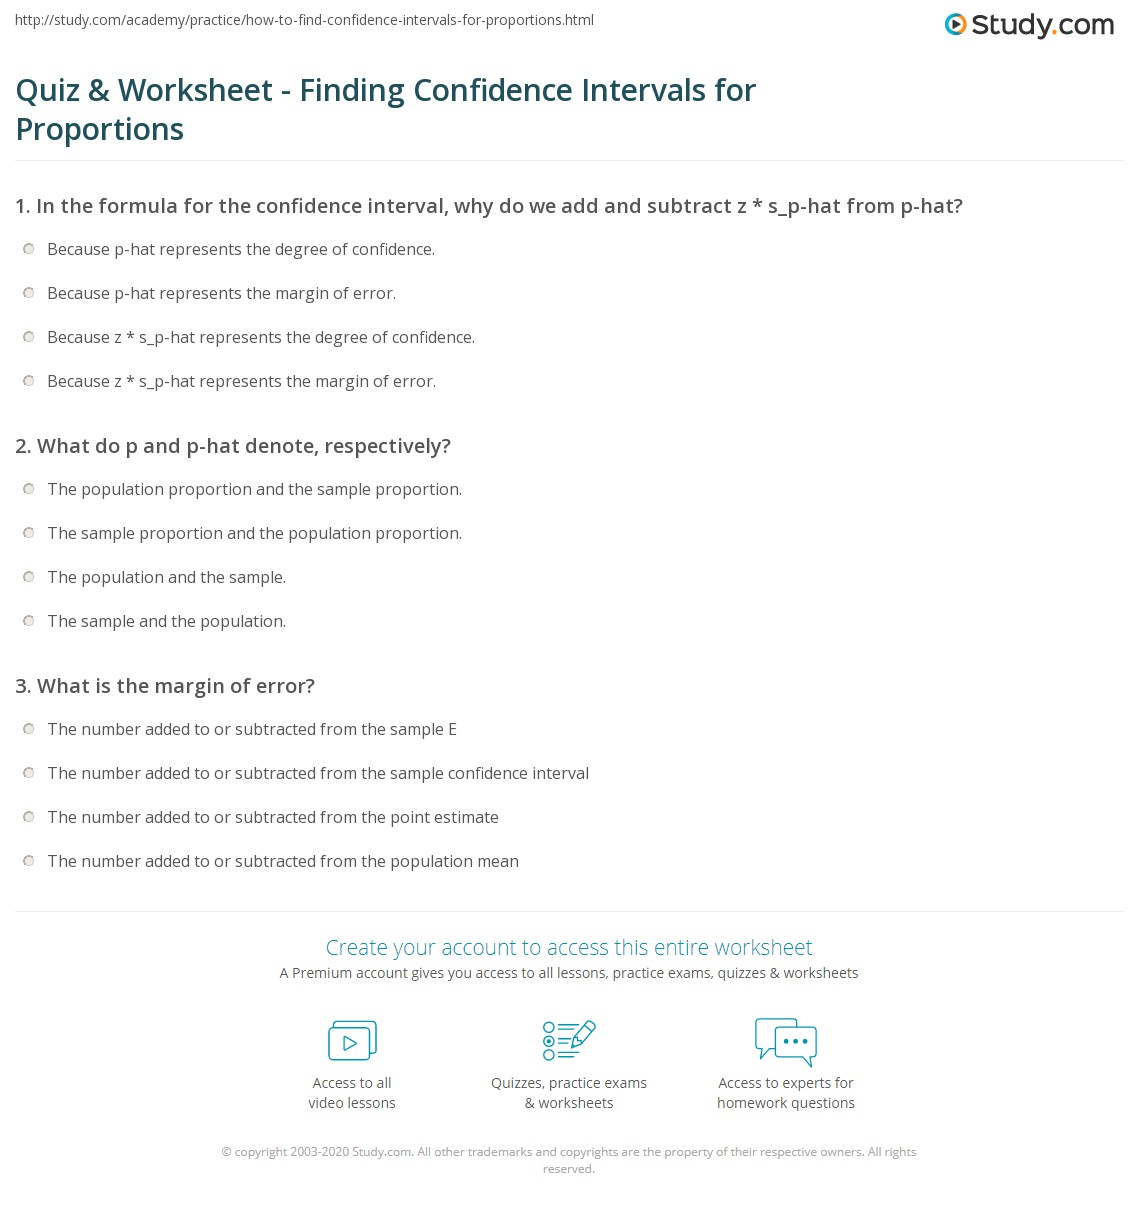 quiz worksheet finding confidence intervals for proportions. Black Bedroom Furniture Sets. Home Design Ideas